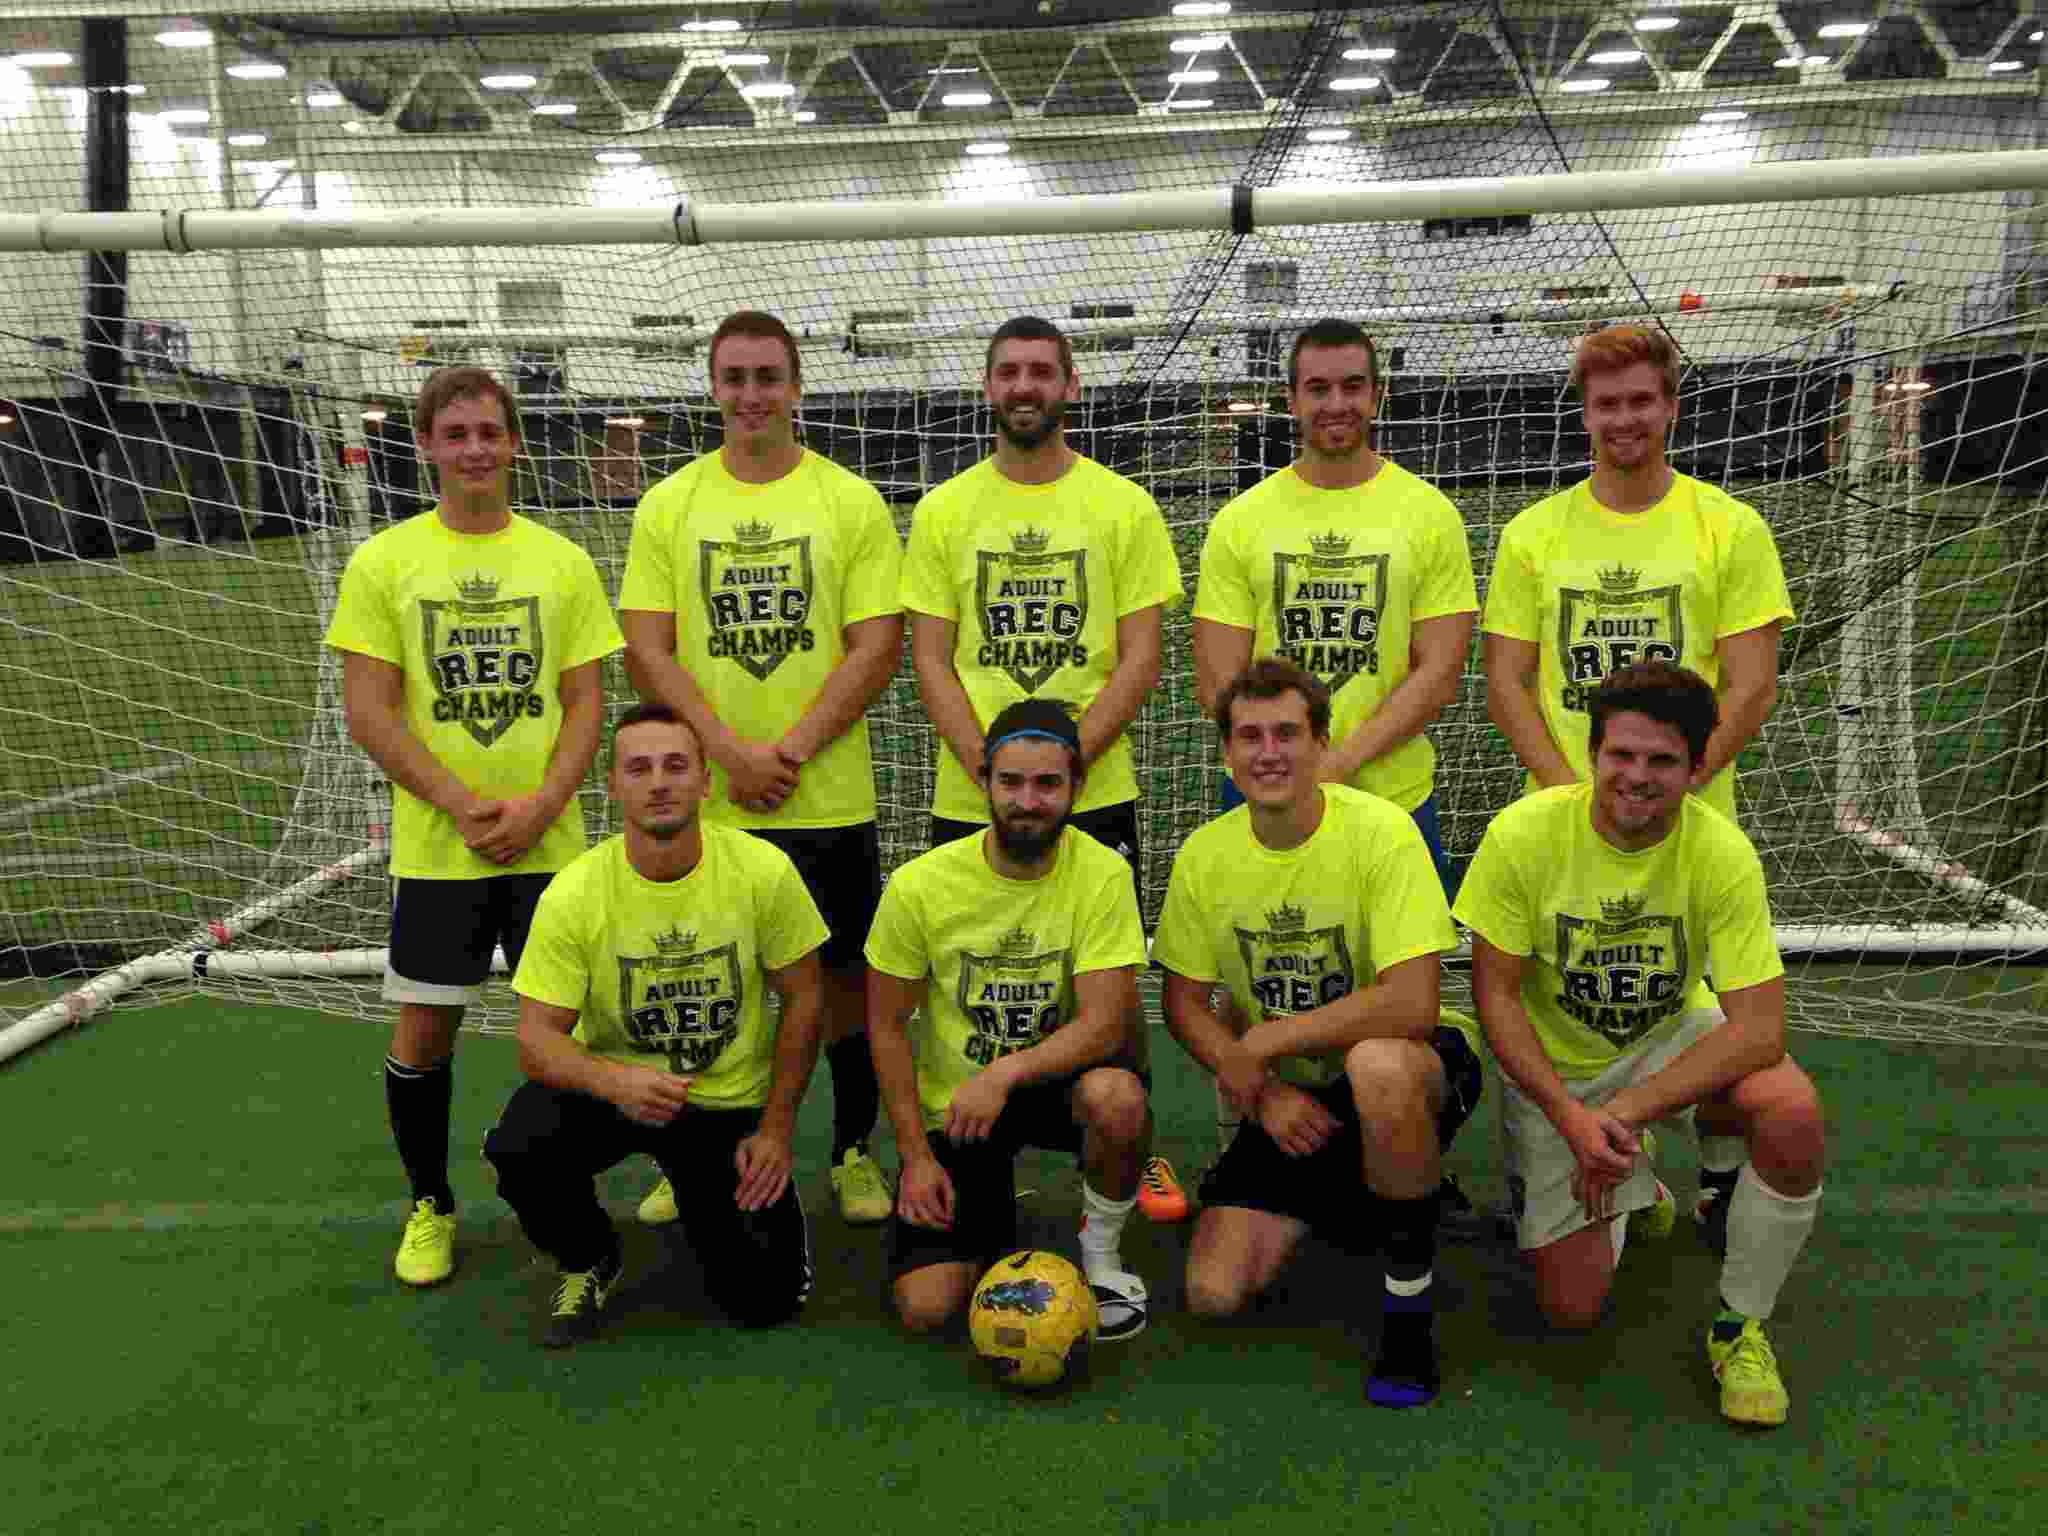 Adult Rec League Soccer in Manheim, PA